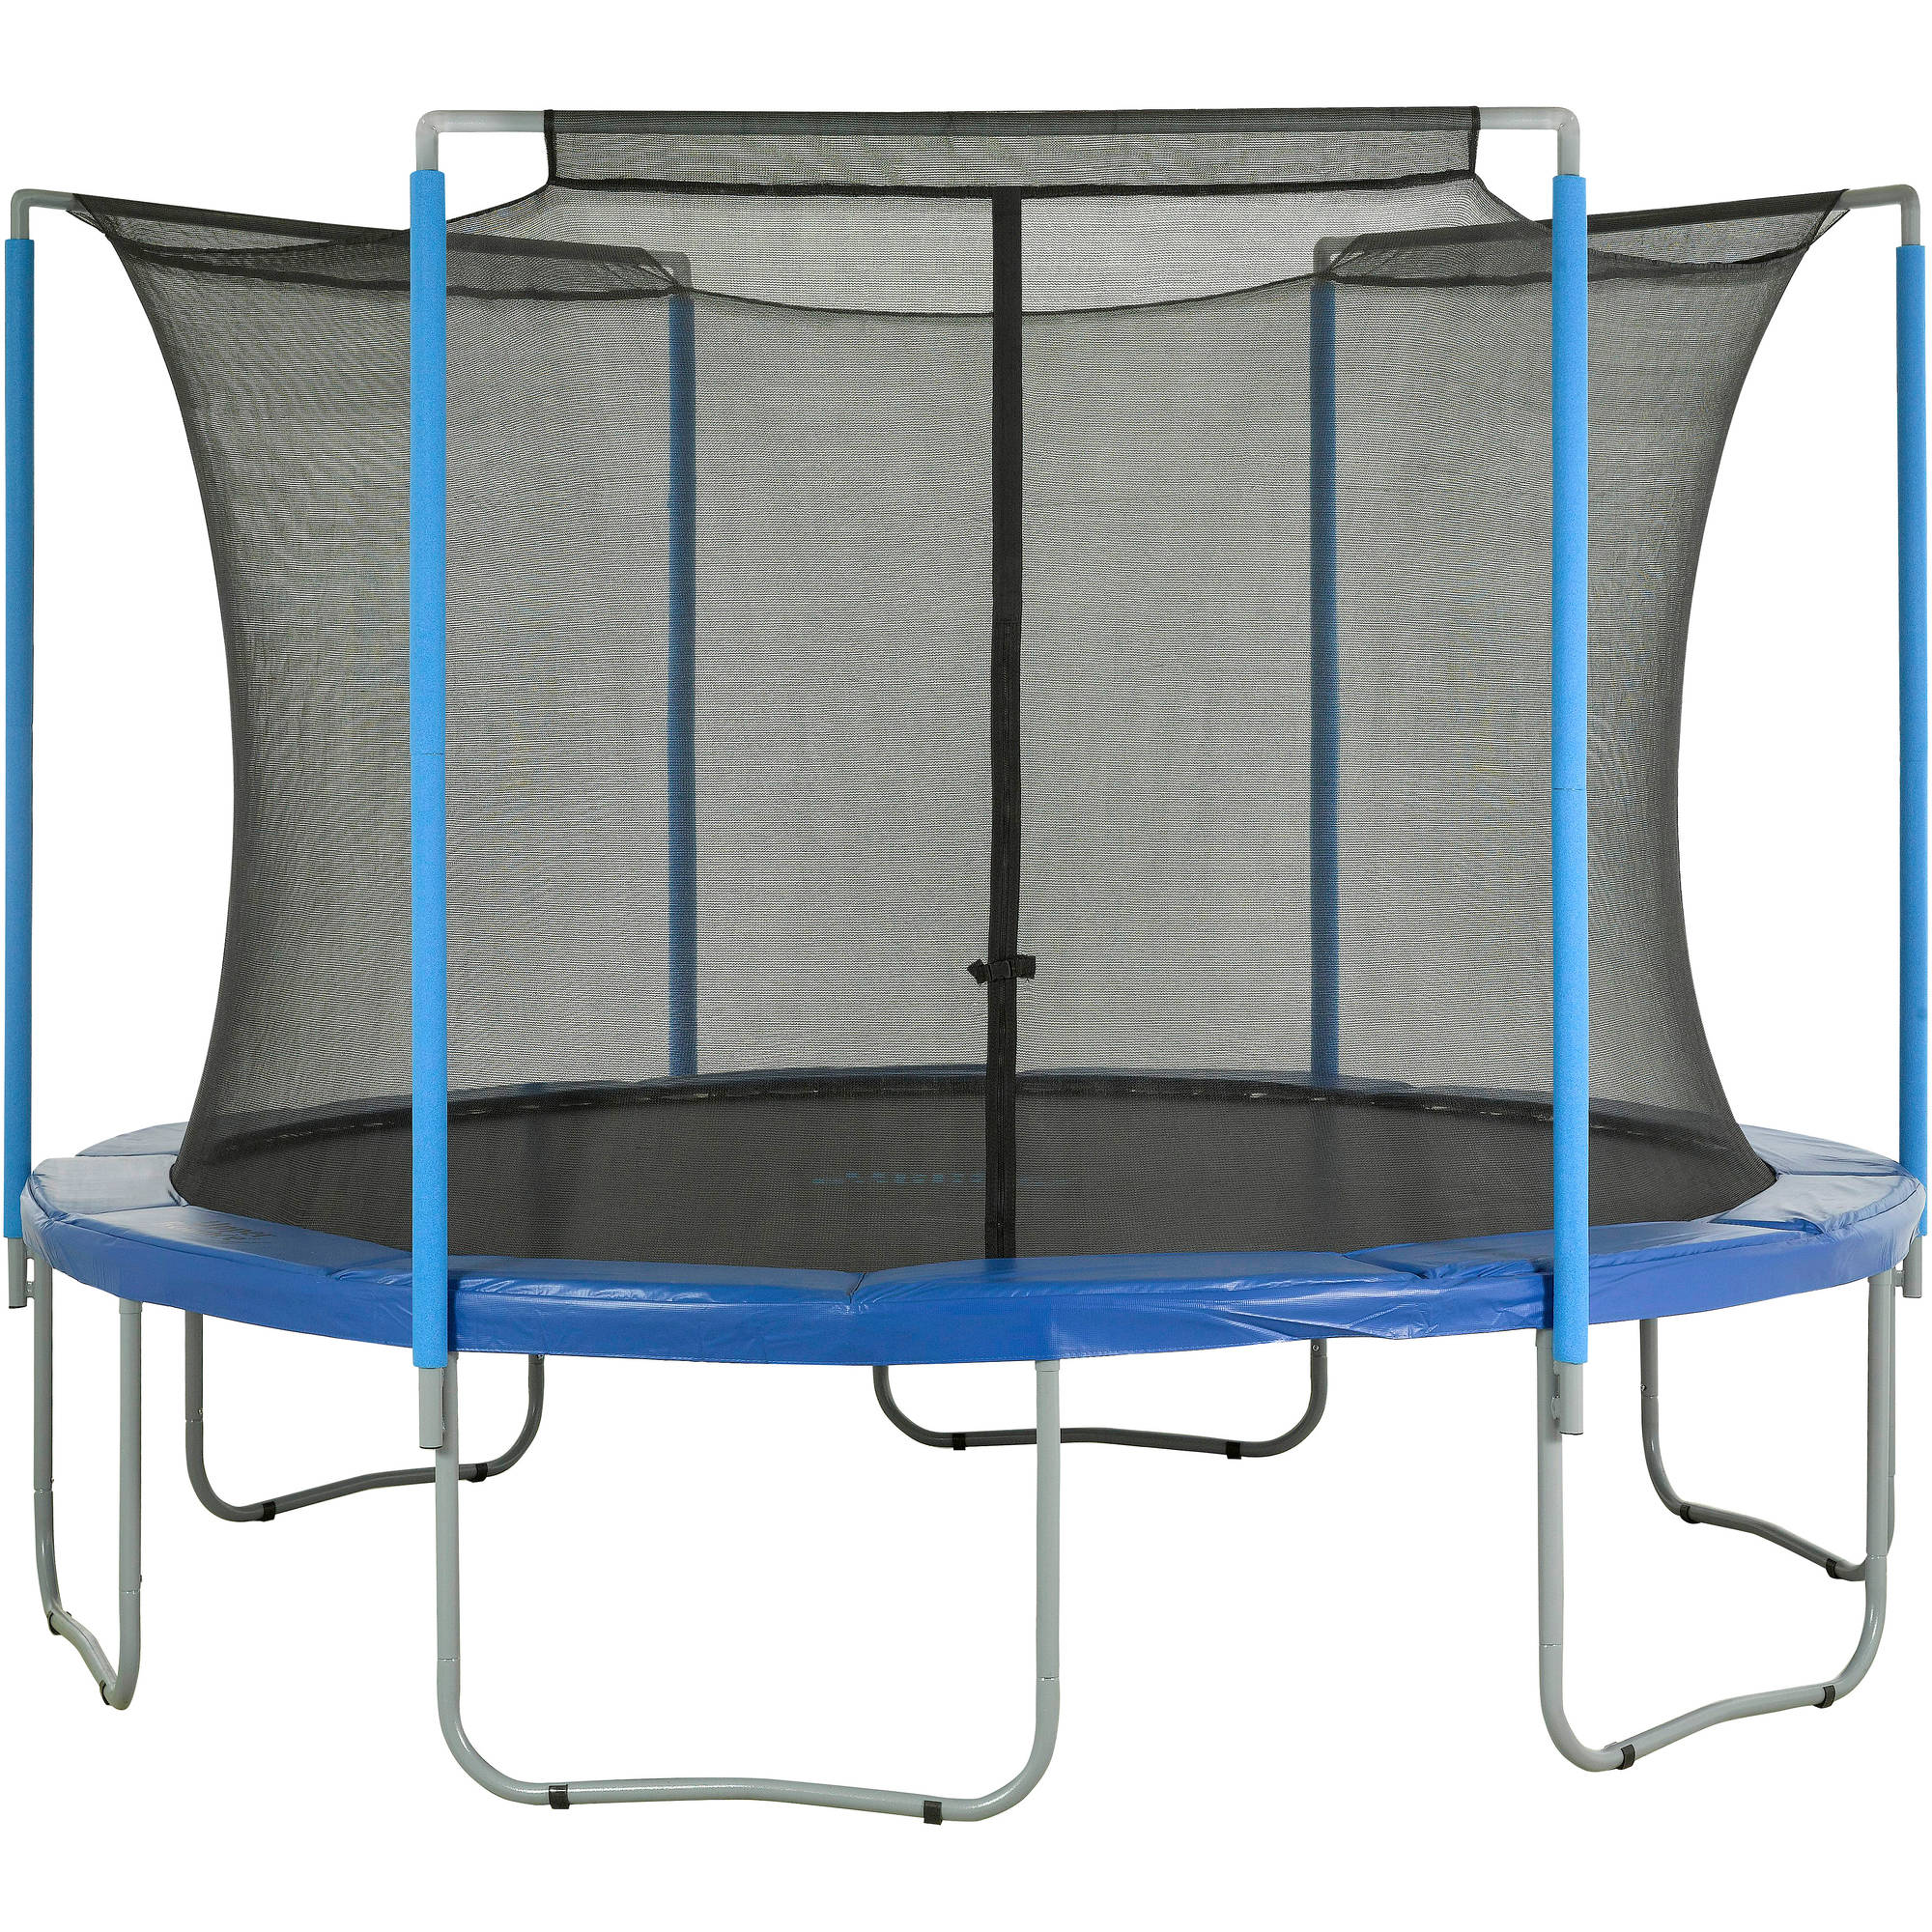 Trampoline Replacement Enclosure Safety Net Fits 12' Round